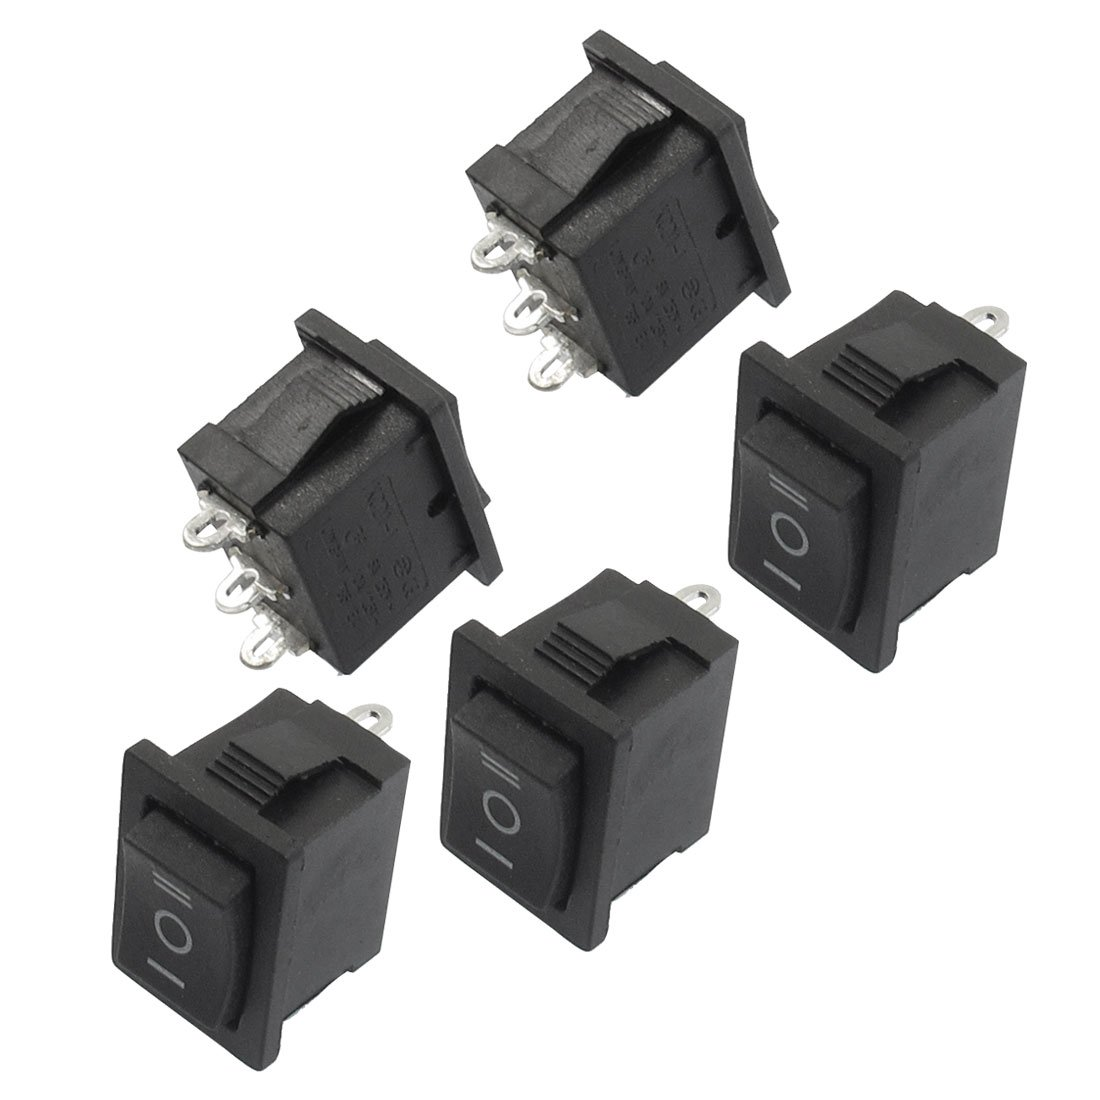 Promotion! 5 pcs SPDT On/Off/On Mini Black 3 Pin Rocker Switch AC 6A/250V 10A/125V фотоальбомы veld co фотоальбом